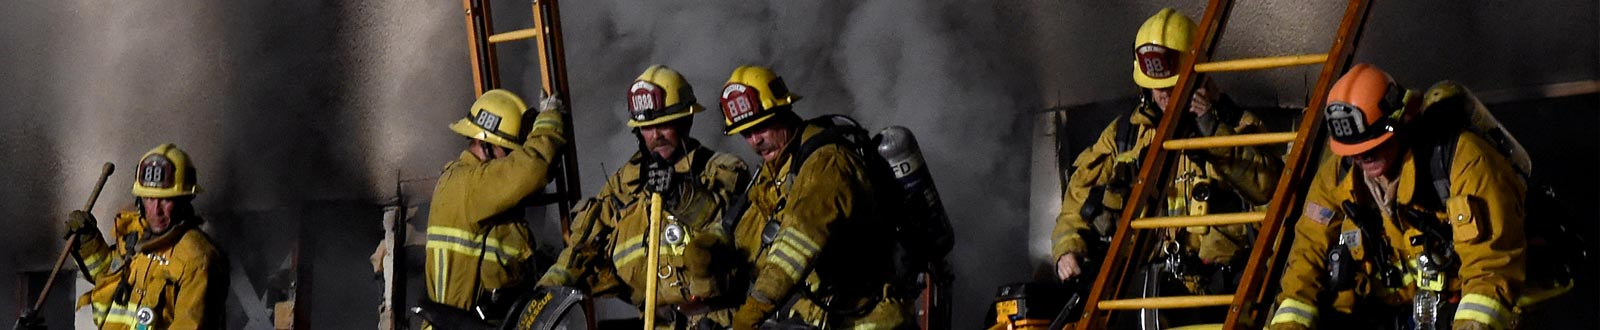 essay on fire service Uk essays have been the leading essay writing service since 2003 each essay is written by a fully qualified essay writer who specialises in your chosen subject area.